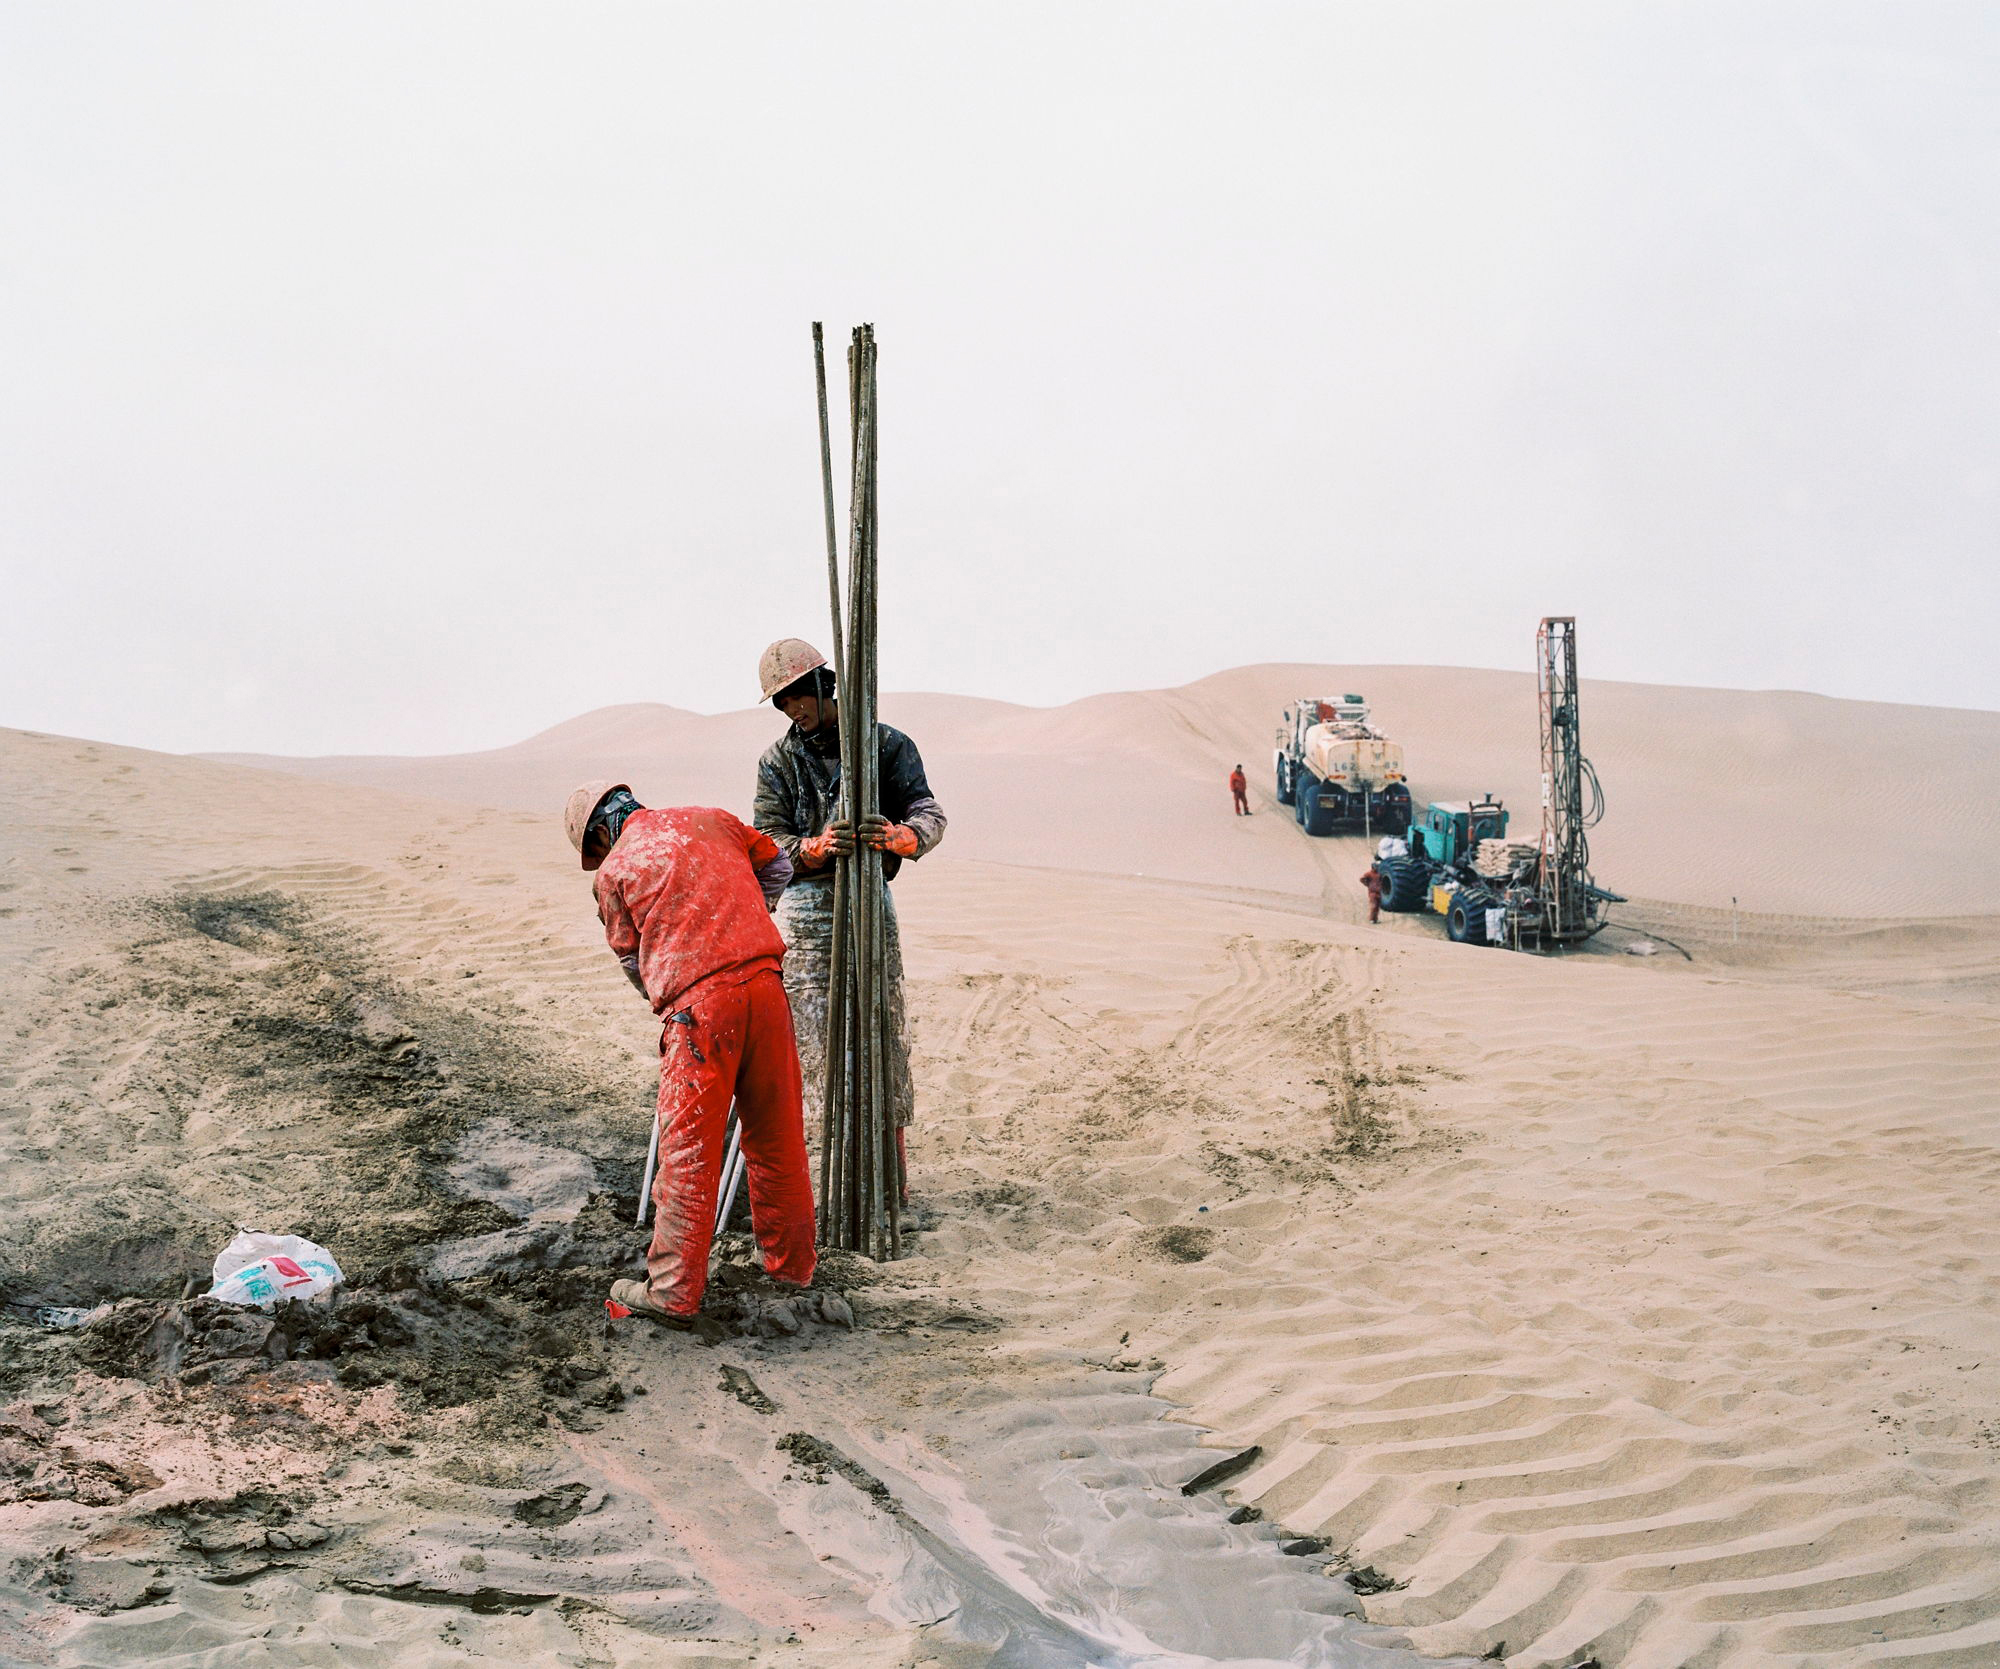 An oil exploration team from a Chinese state-owned company operates in the Taklamakan Desert, in China's westermost province of Xinjiang, in December 2016.